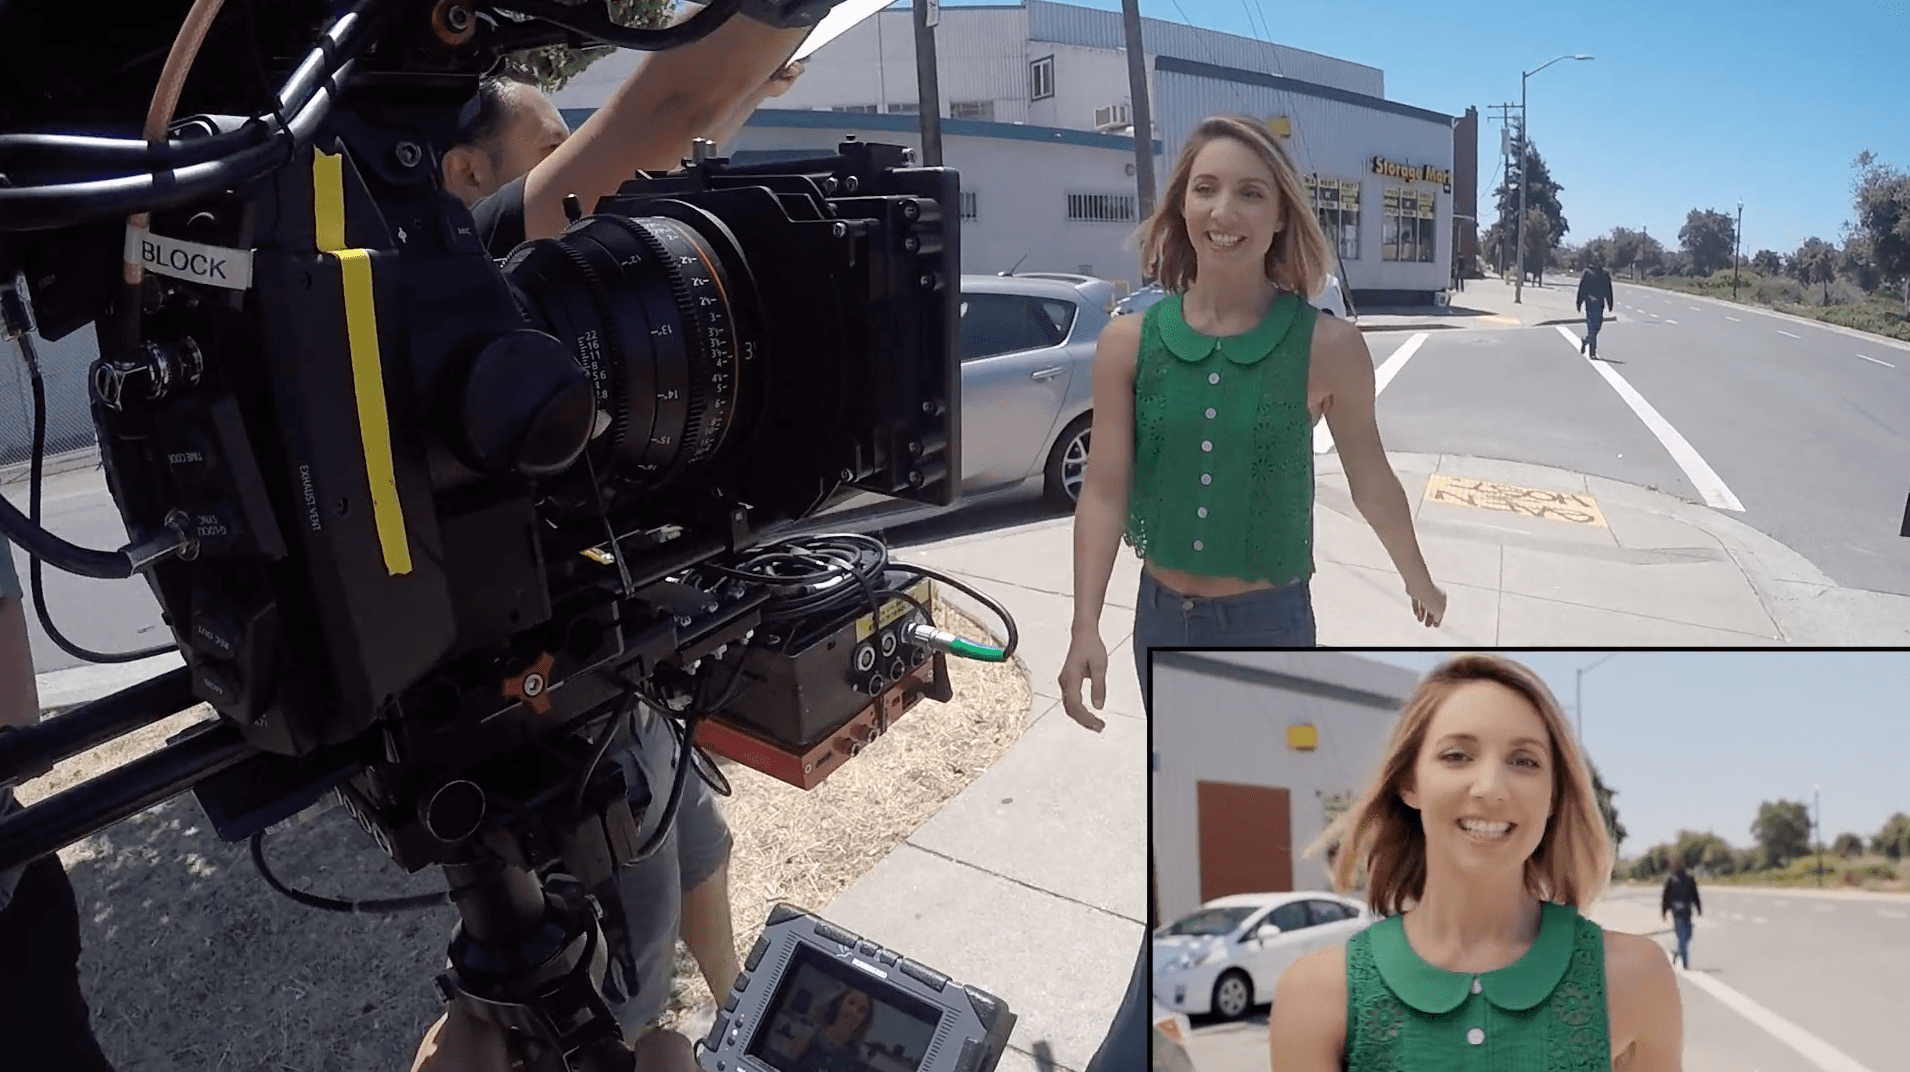 Video Production in San Francisco with Steadicam